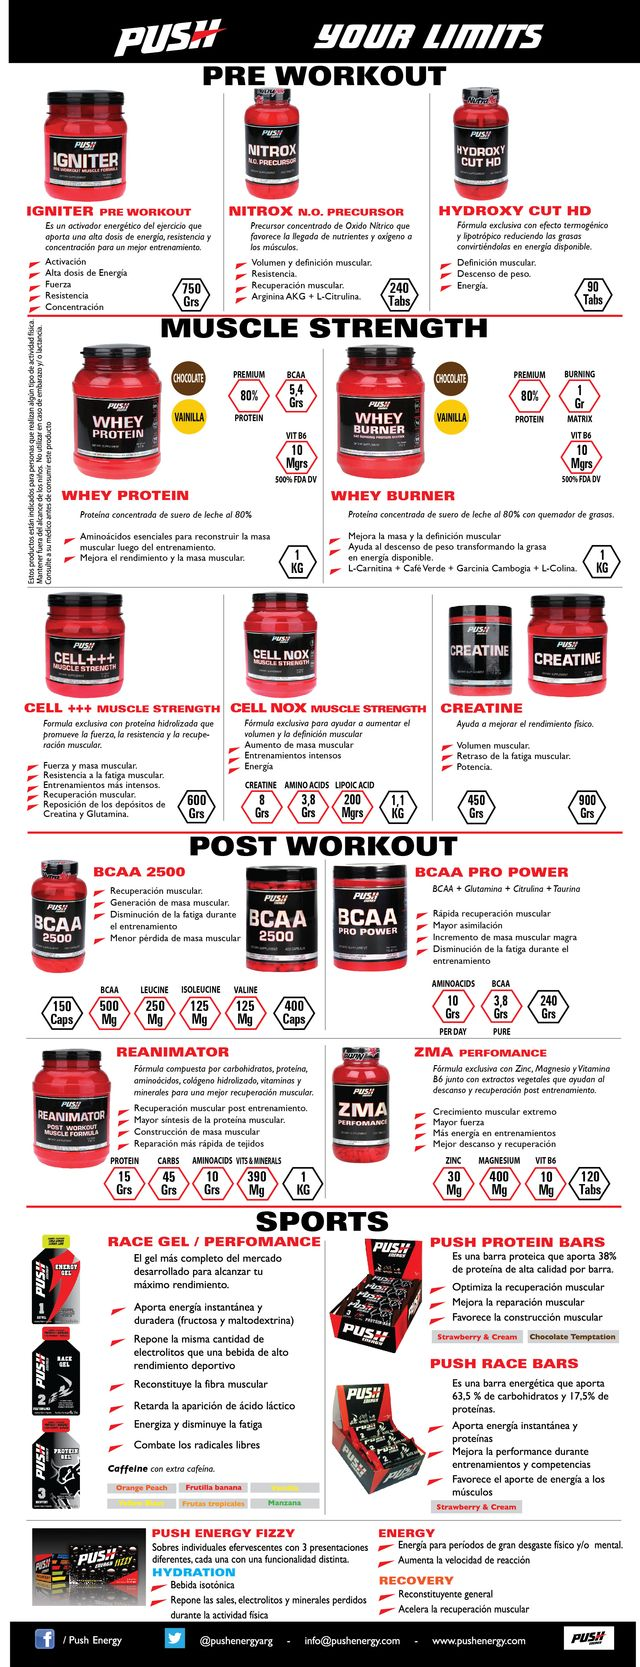 Bcaa 2500 Push Energy x150 Caps. en internet